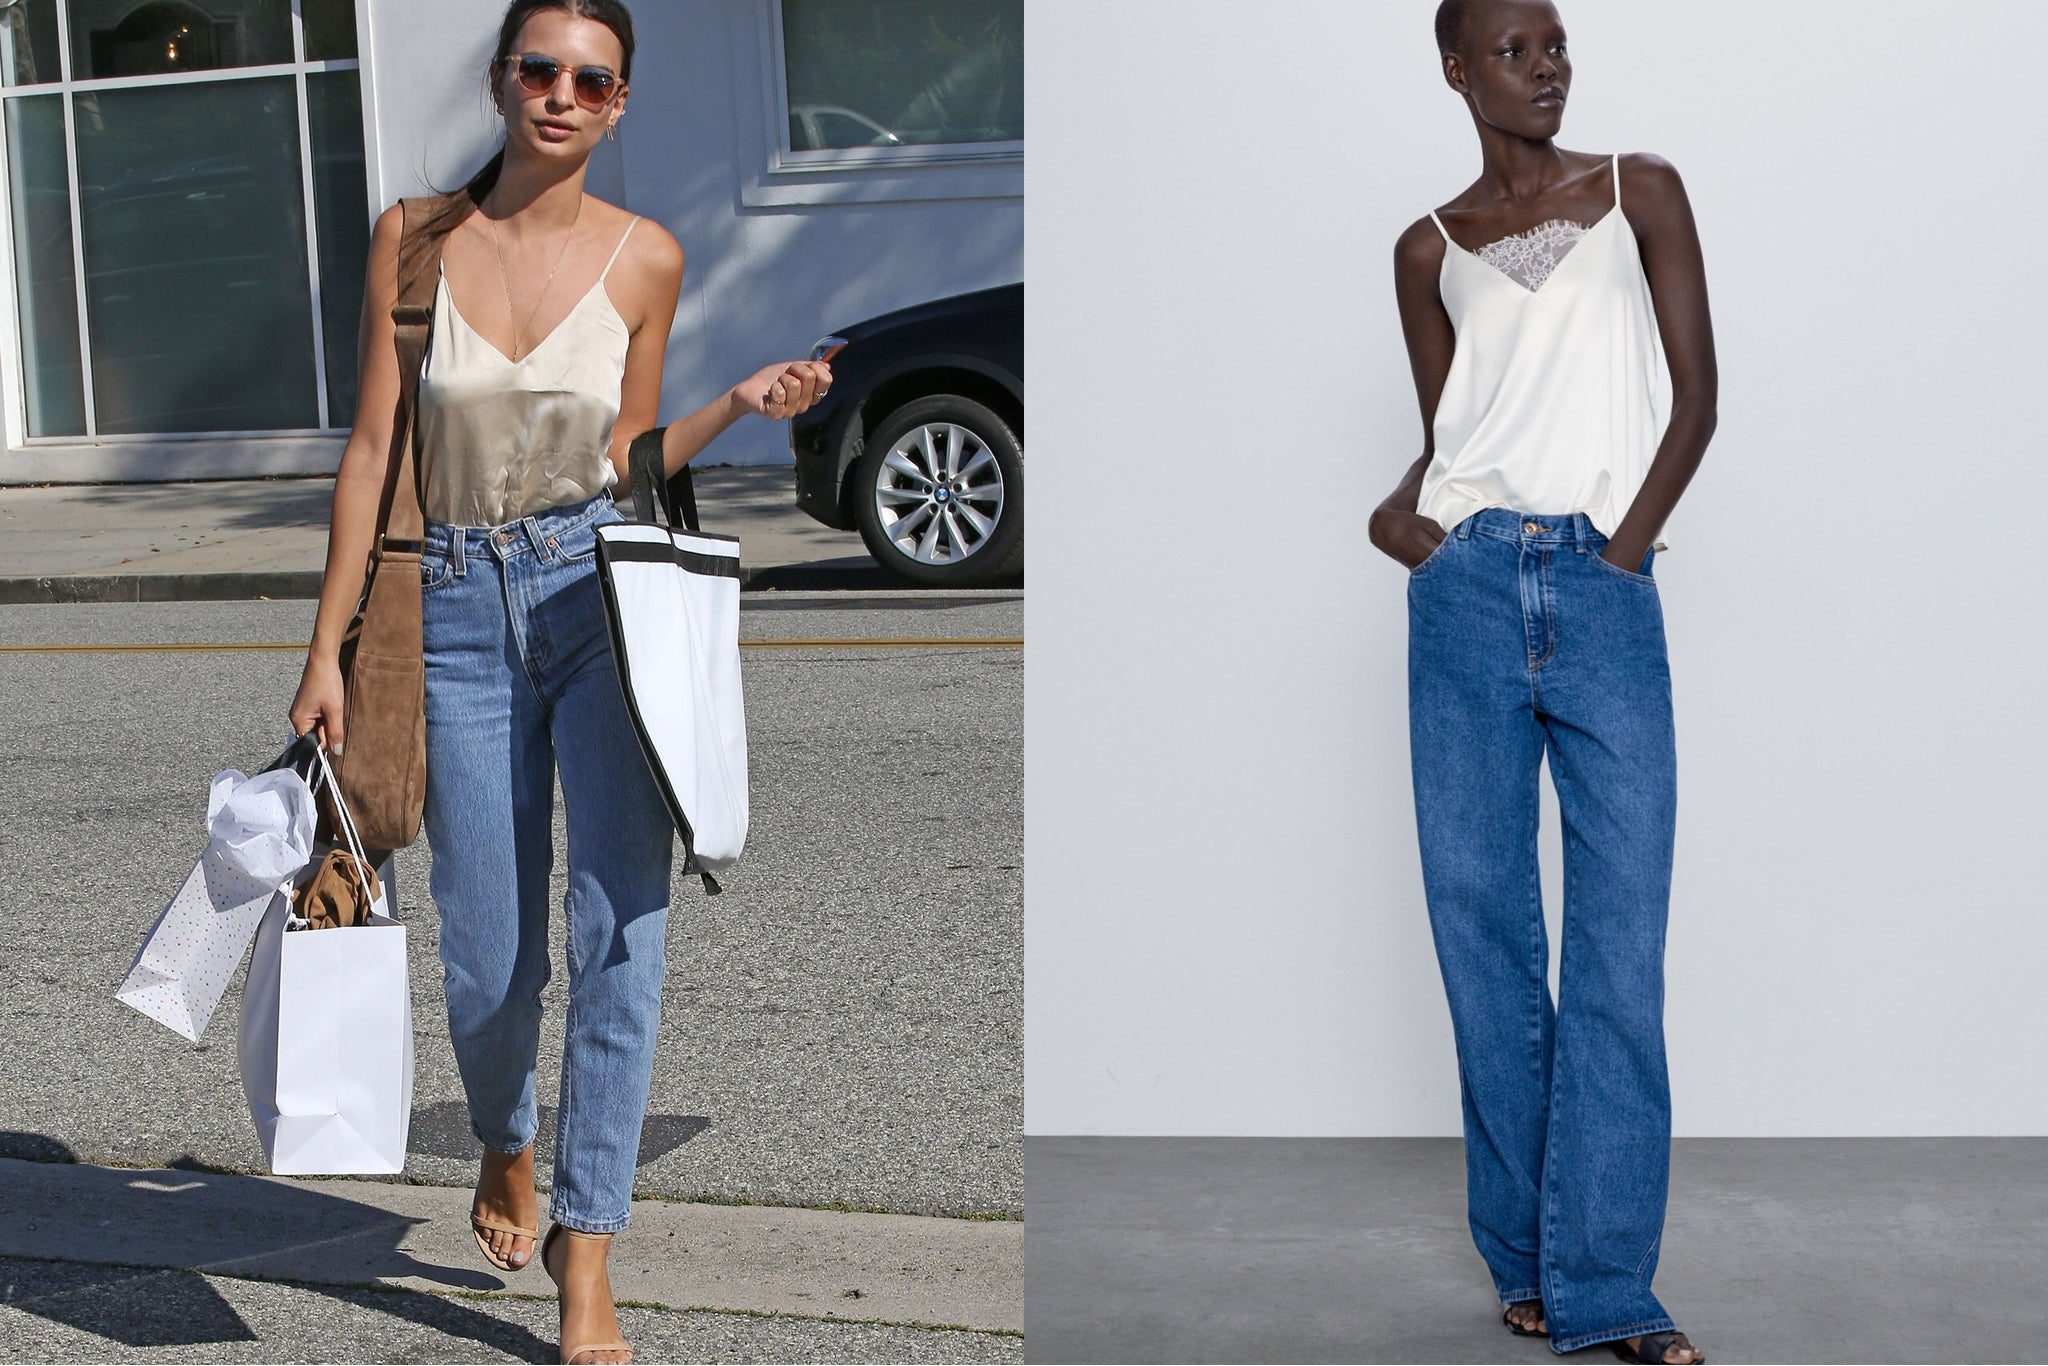 Bellevue Camisole Styling Inspiration